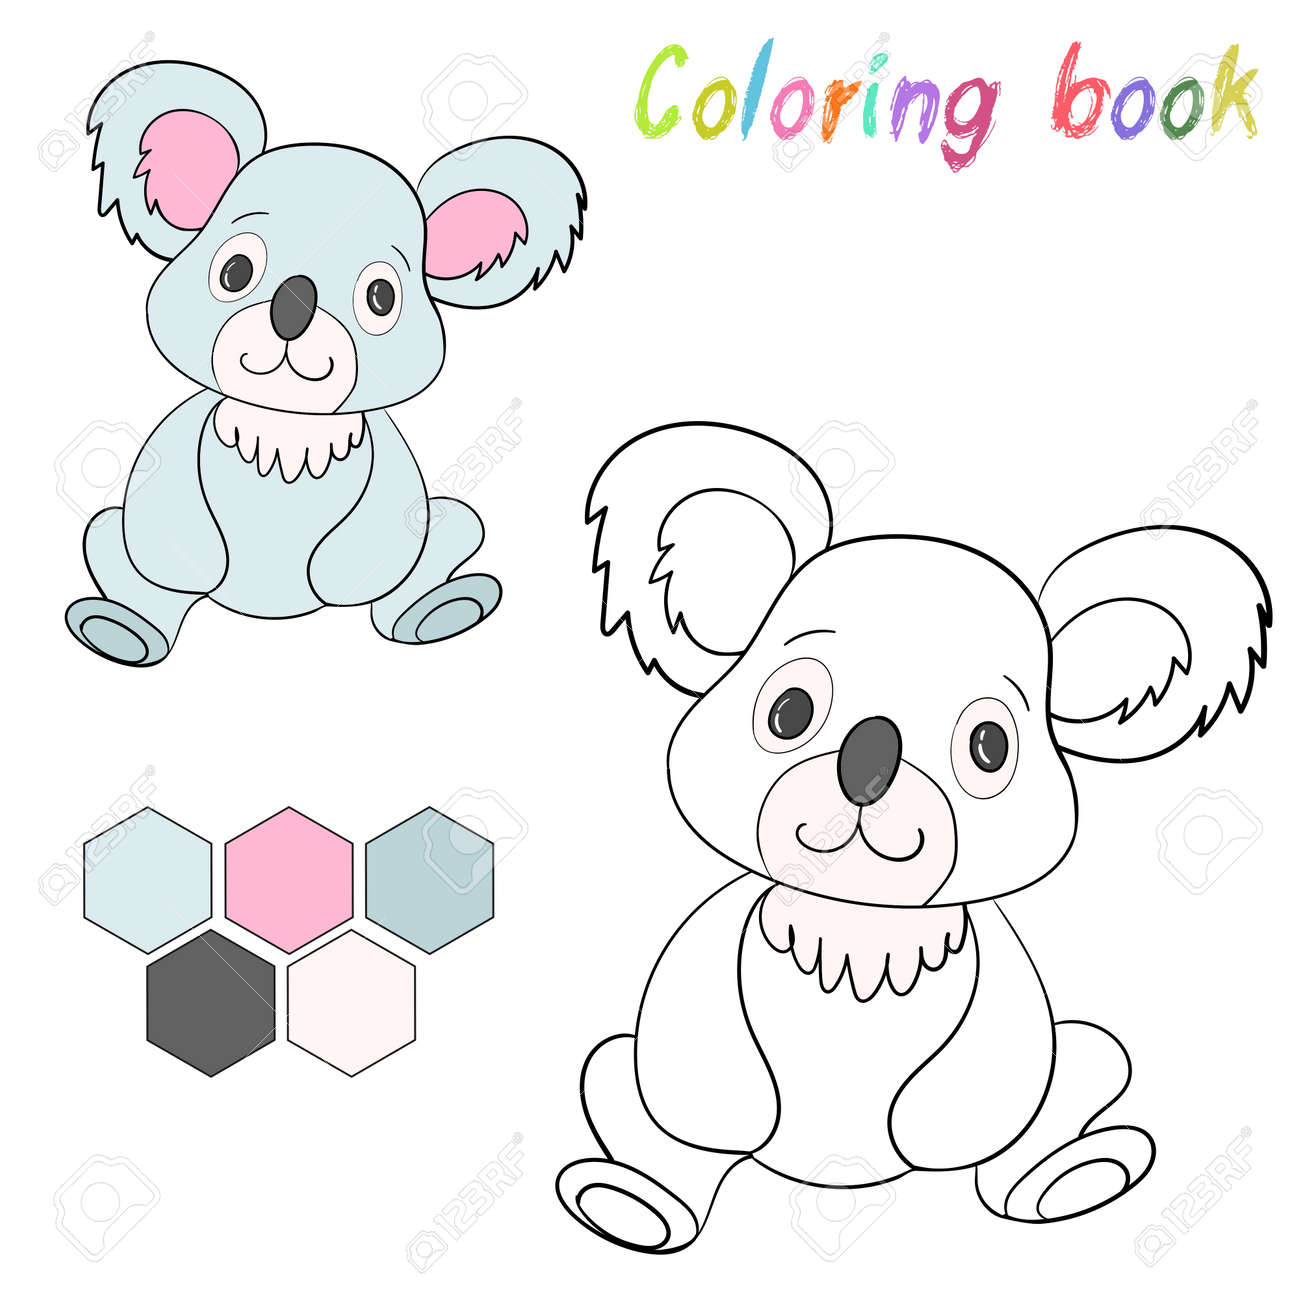 Coloring Book Koala Bear Kids Layout For Game Cartoon Doodle Hand Drawn Vector Illustration Stock